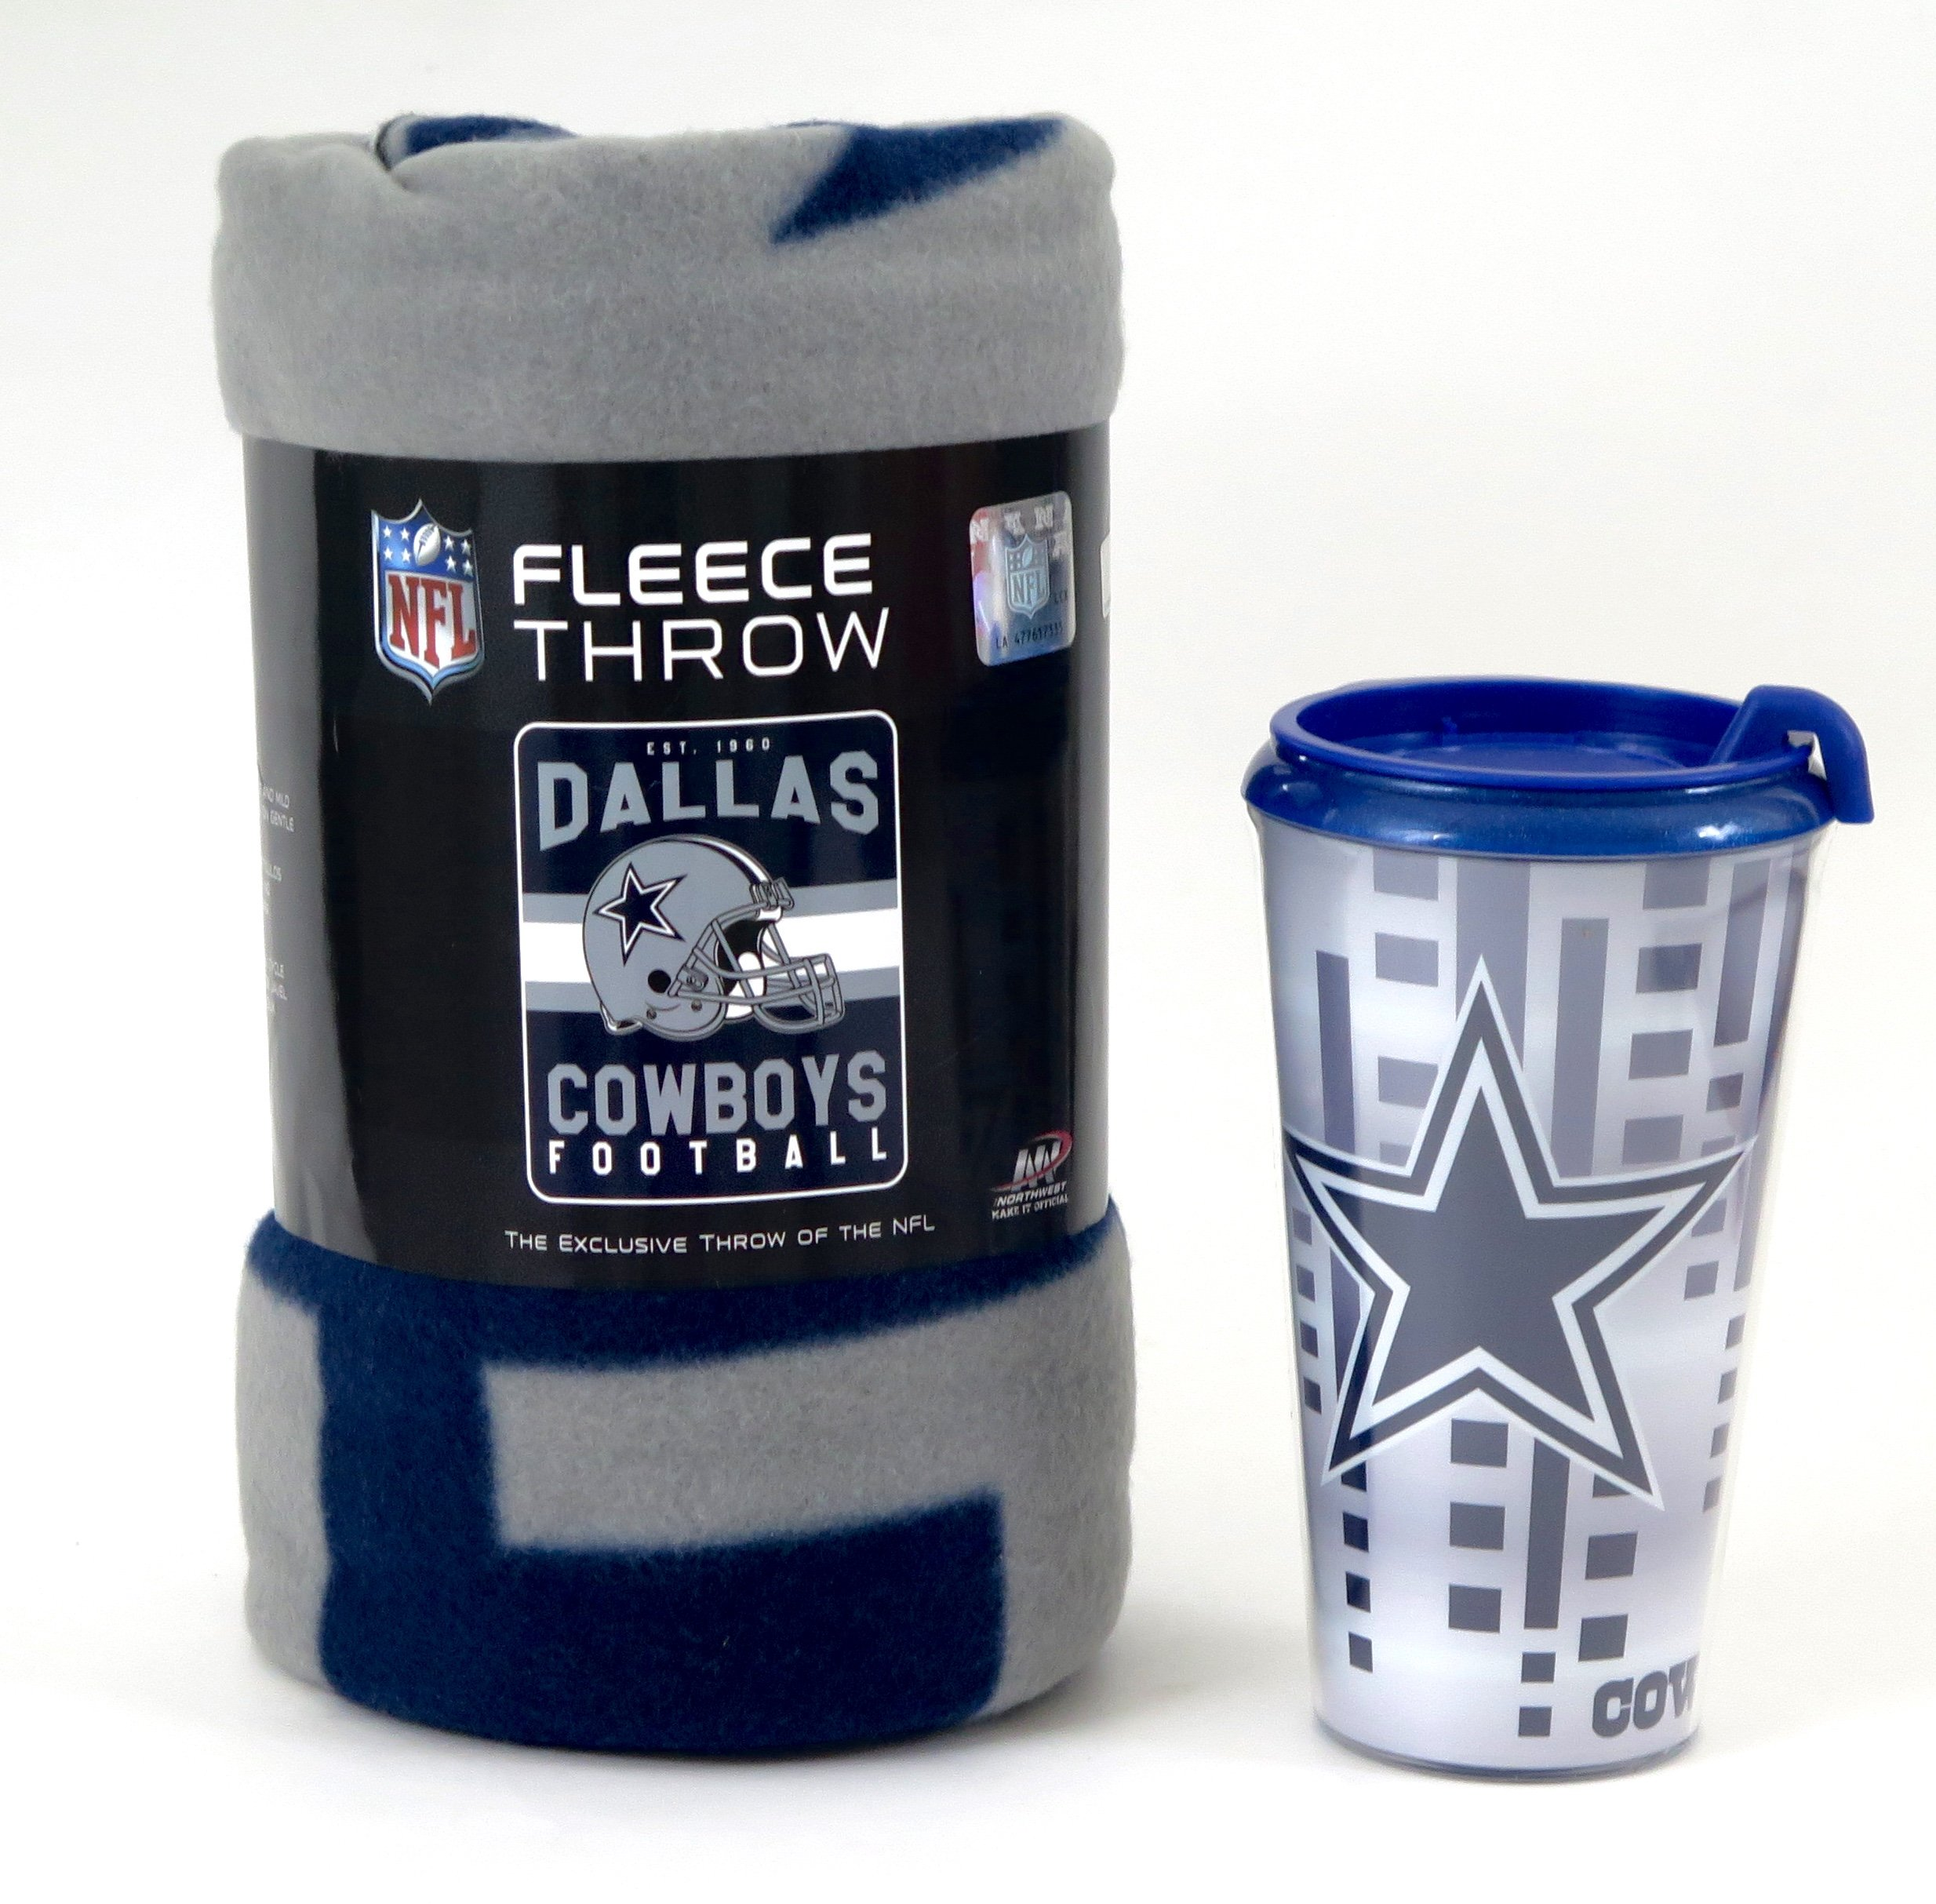 Dallas Cowboys Blanket and Tumbler set. This soft fleece throw blanket will keep you warm at the game or ar home.